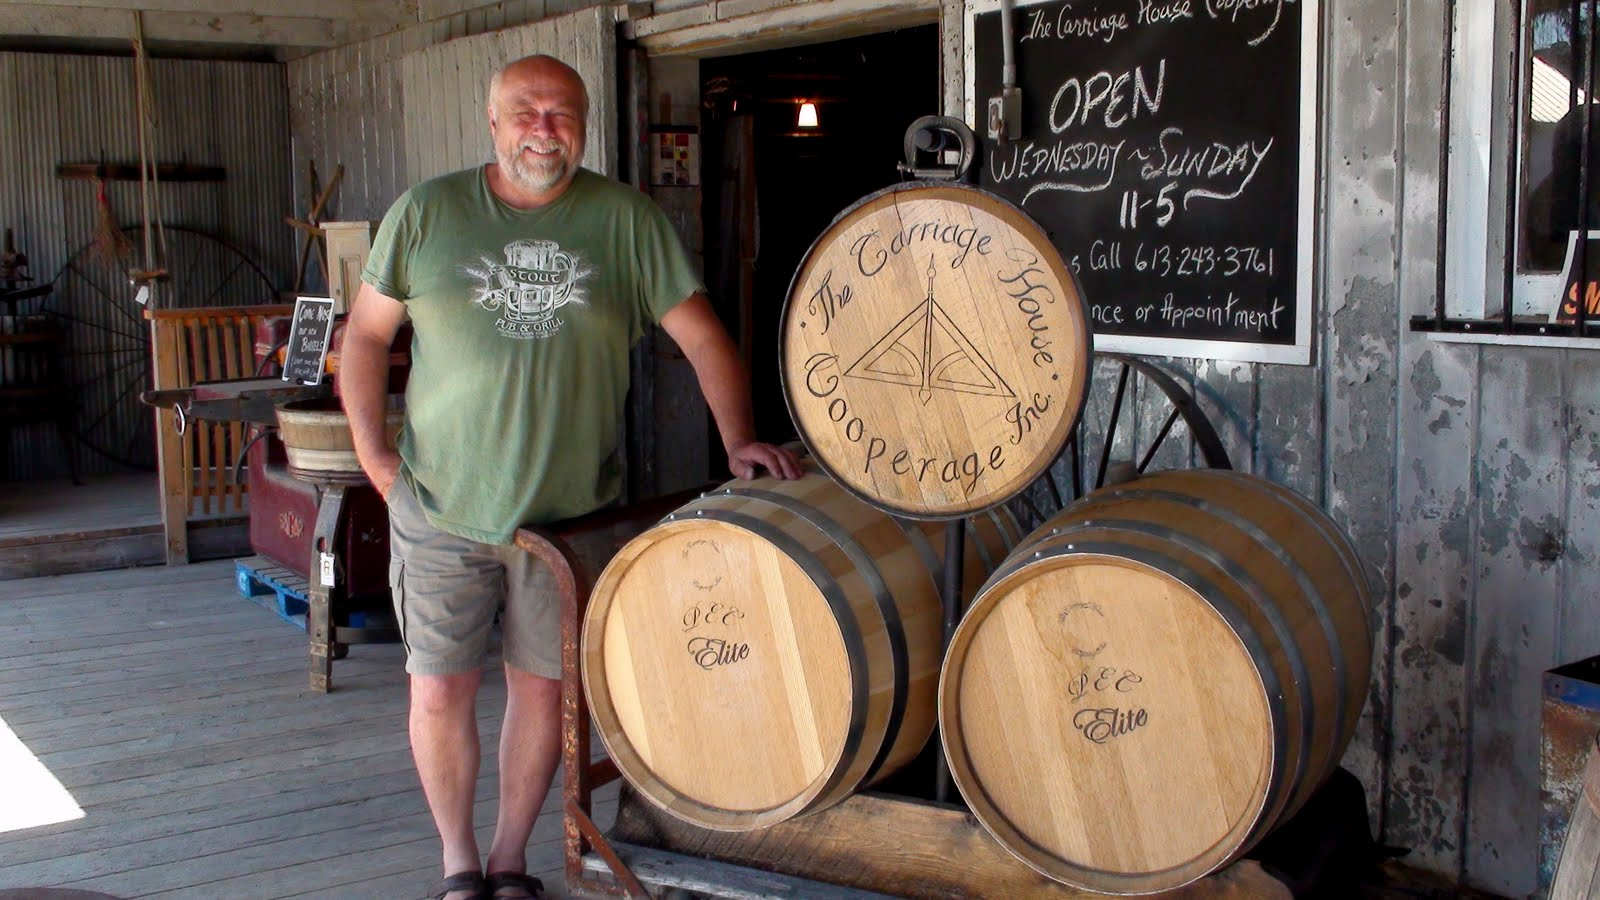 The owner of the barrel factory.